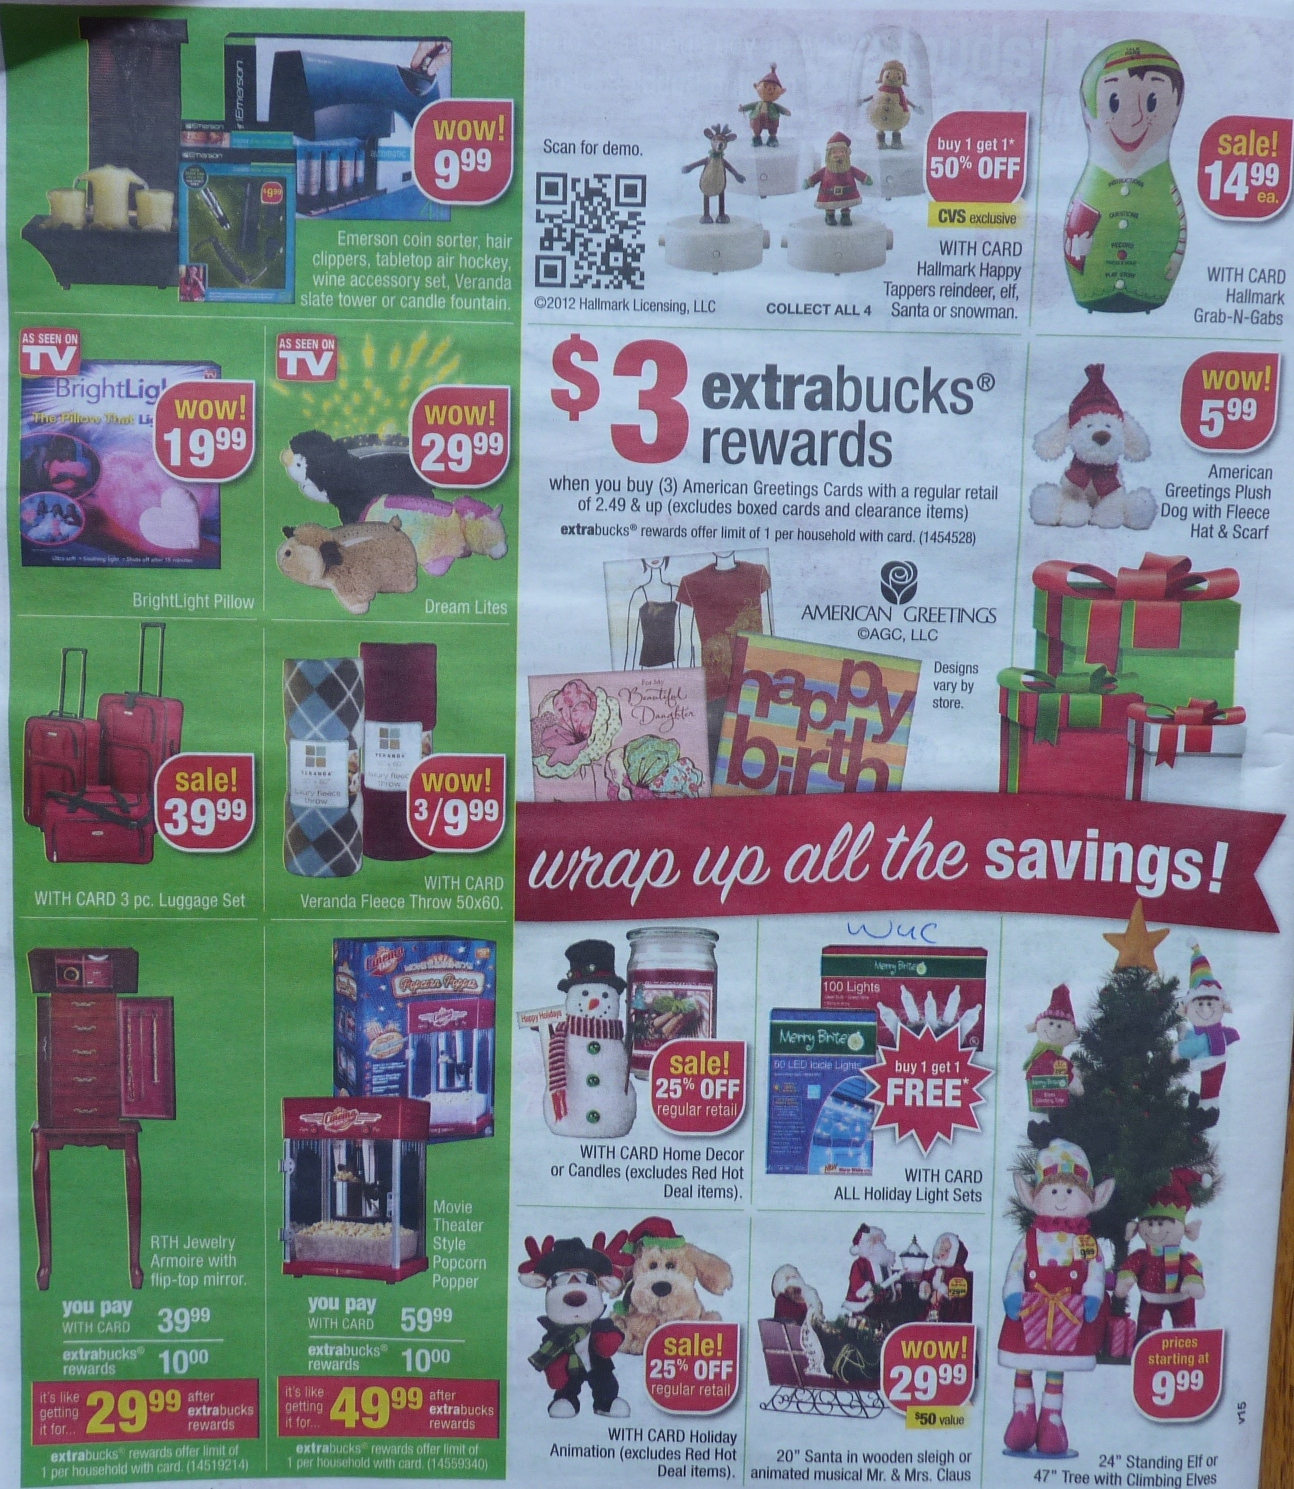 Simply cvs cvs ad scan preview for the week of november 4 2012 you can see if there are any printable coupons youd like to print for items on sale at redplum smartsource coupon network or coupons kristyandbryce Choice Image